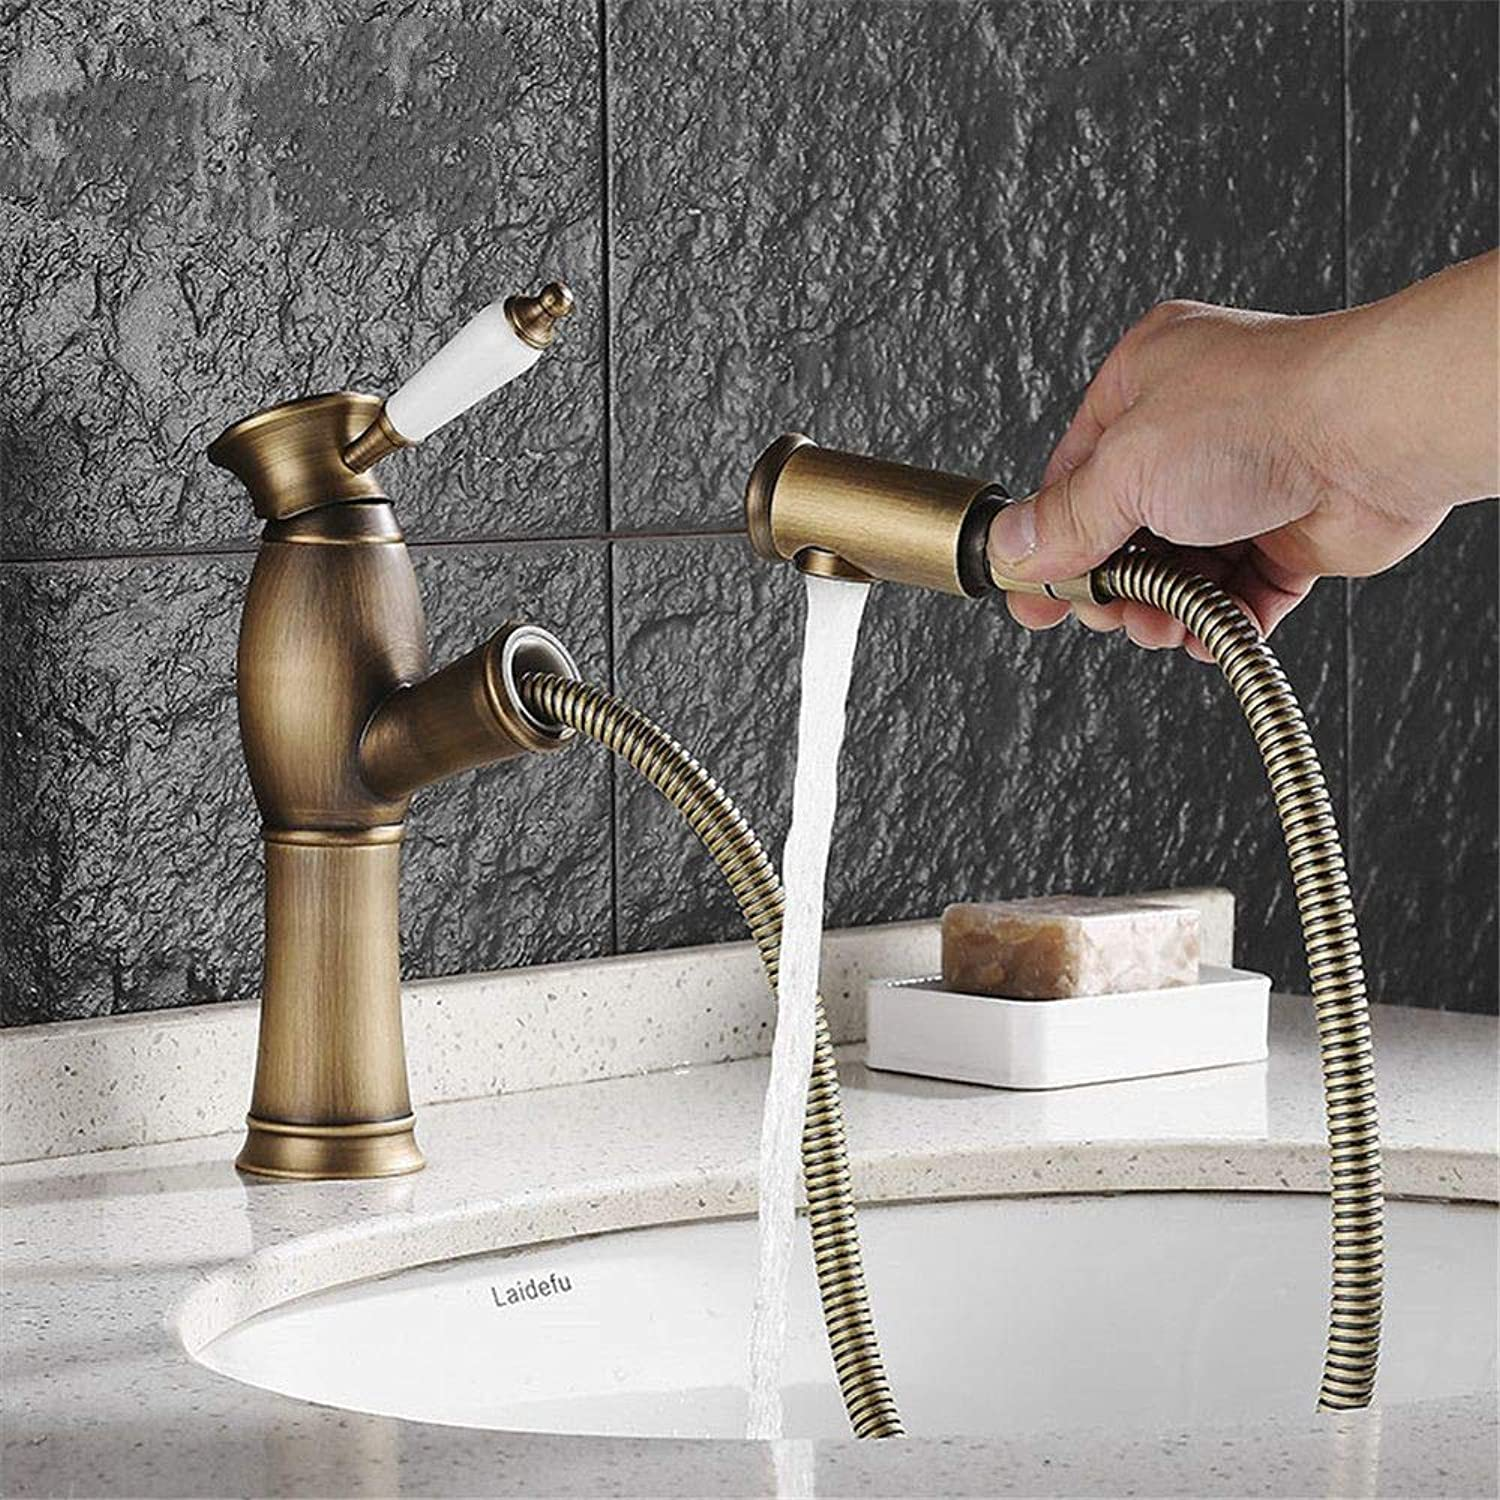 YAWEDA Ancient-Style Belt Pulls Out The Sprinkler Tap, The Faucet, The Faucet, The Faucet, The Ceramic Single-Handled Wrench Type Belt Crystal